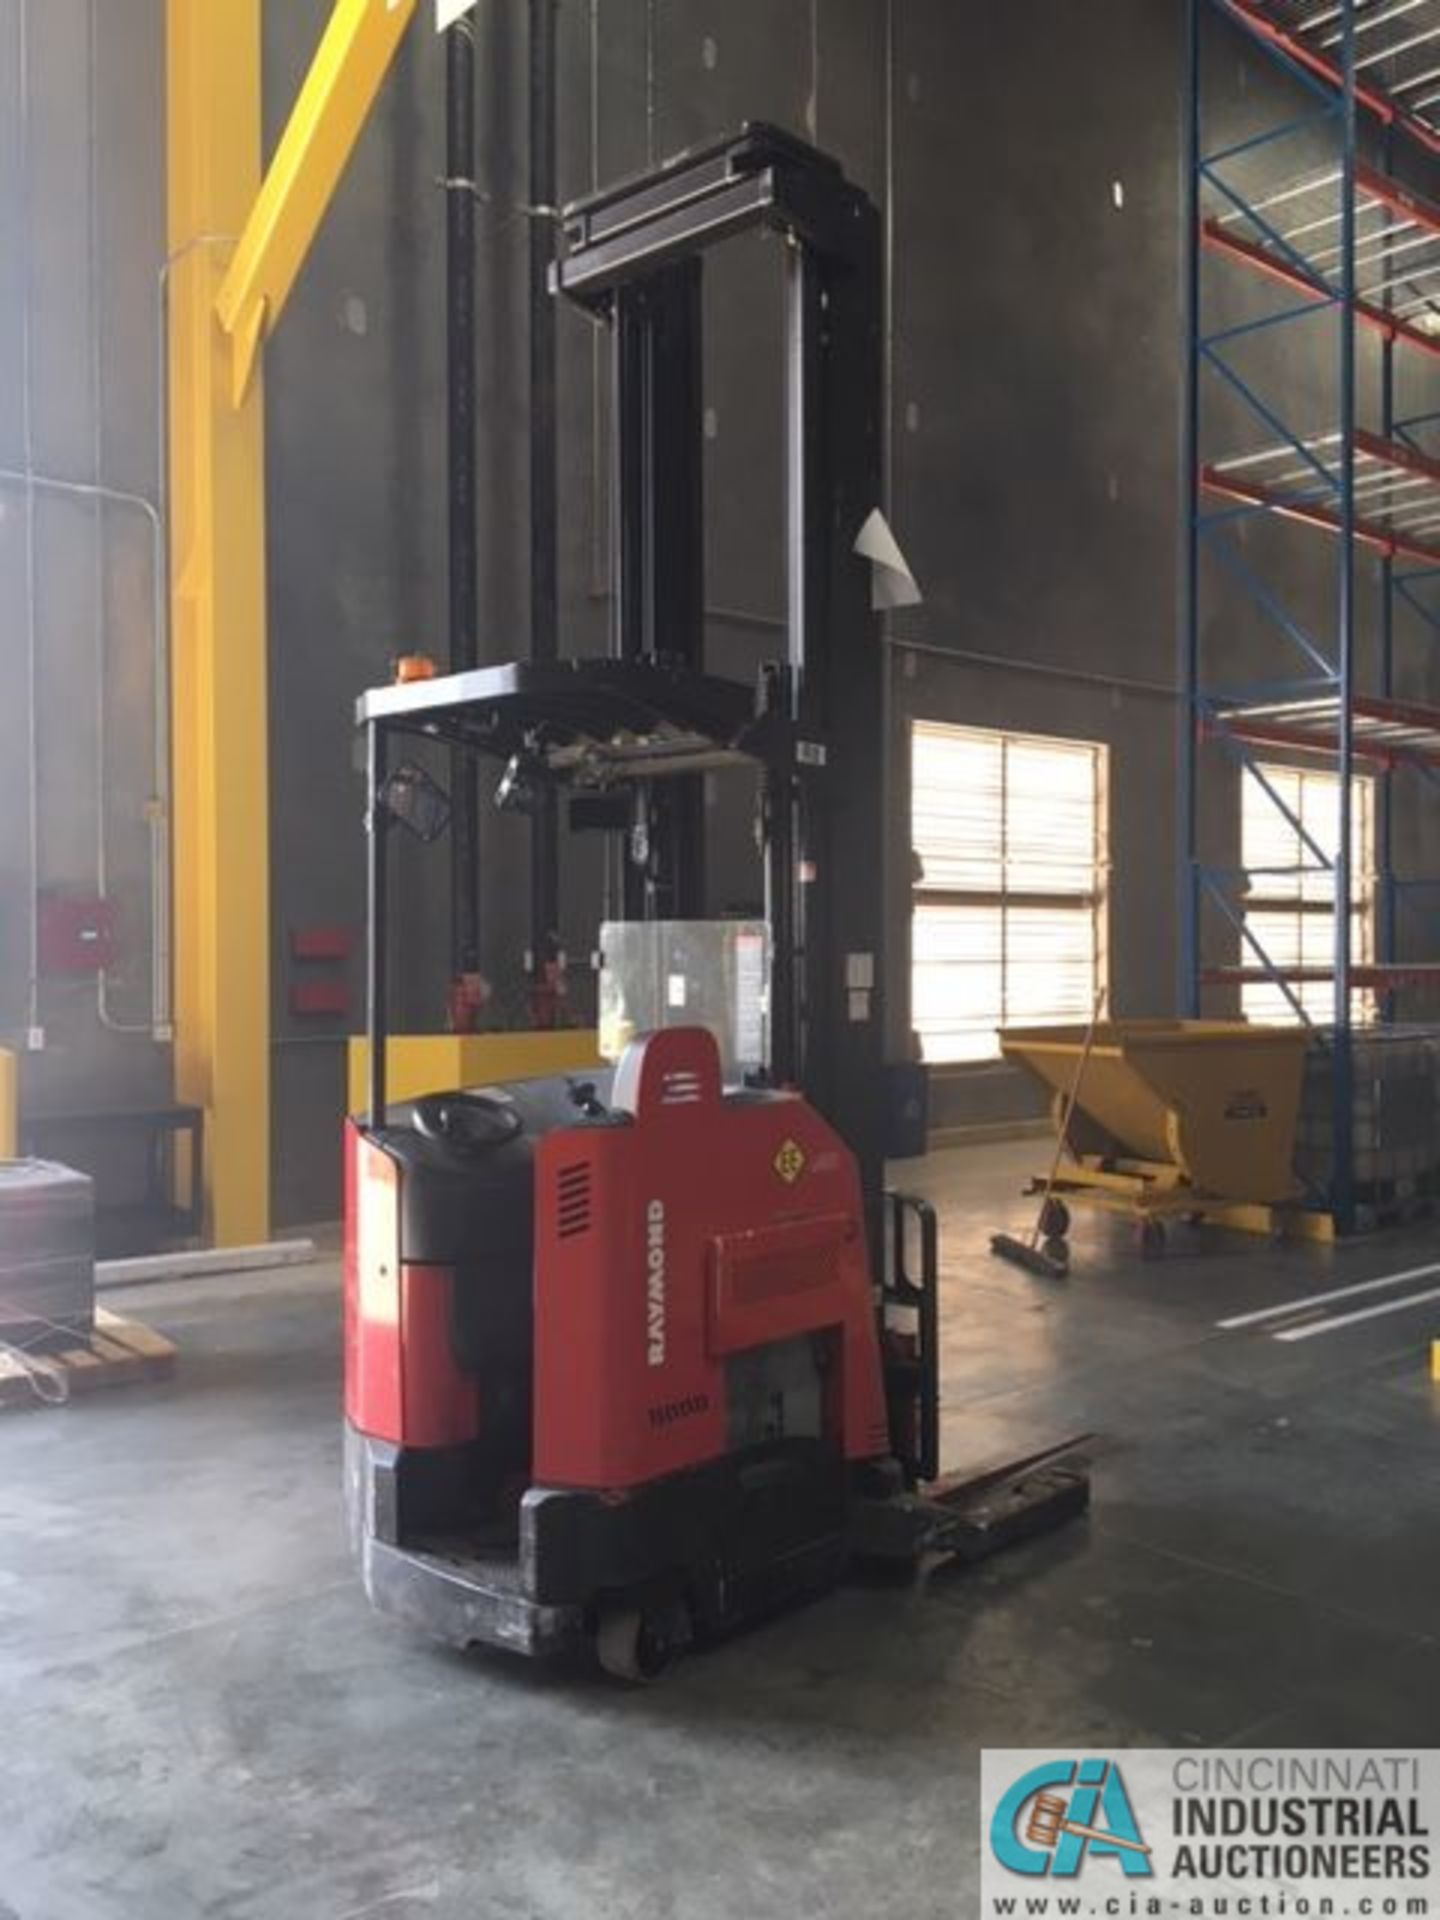 RAYMOND MODEL 750-R45TT ELECTRIC REACH TRUCK; S/N 750-15-BC47246, 36-VOLT BATTERY CHARGER, 36-VOLT - Image 6 of 9